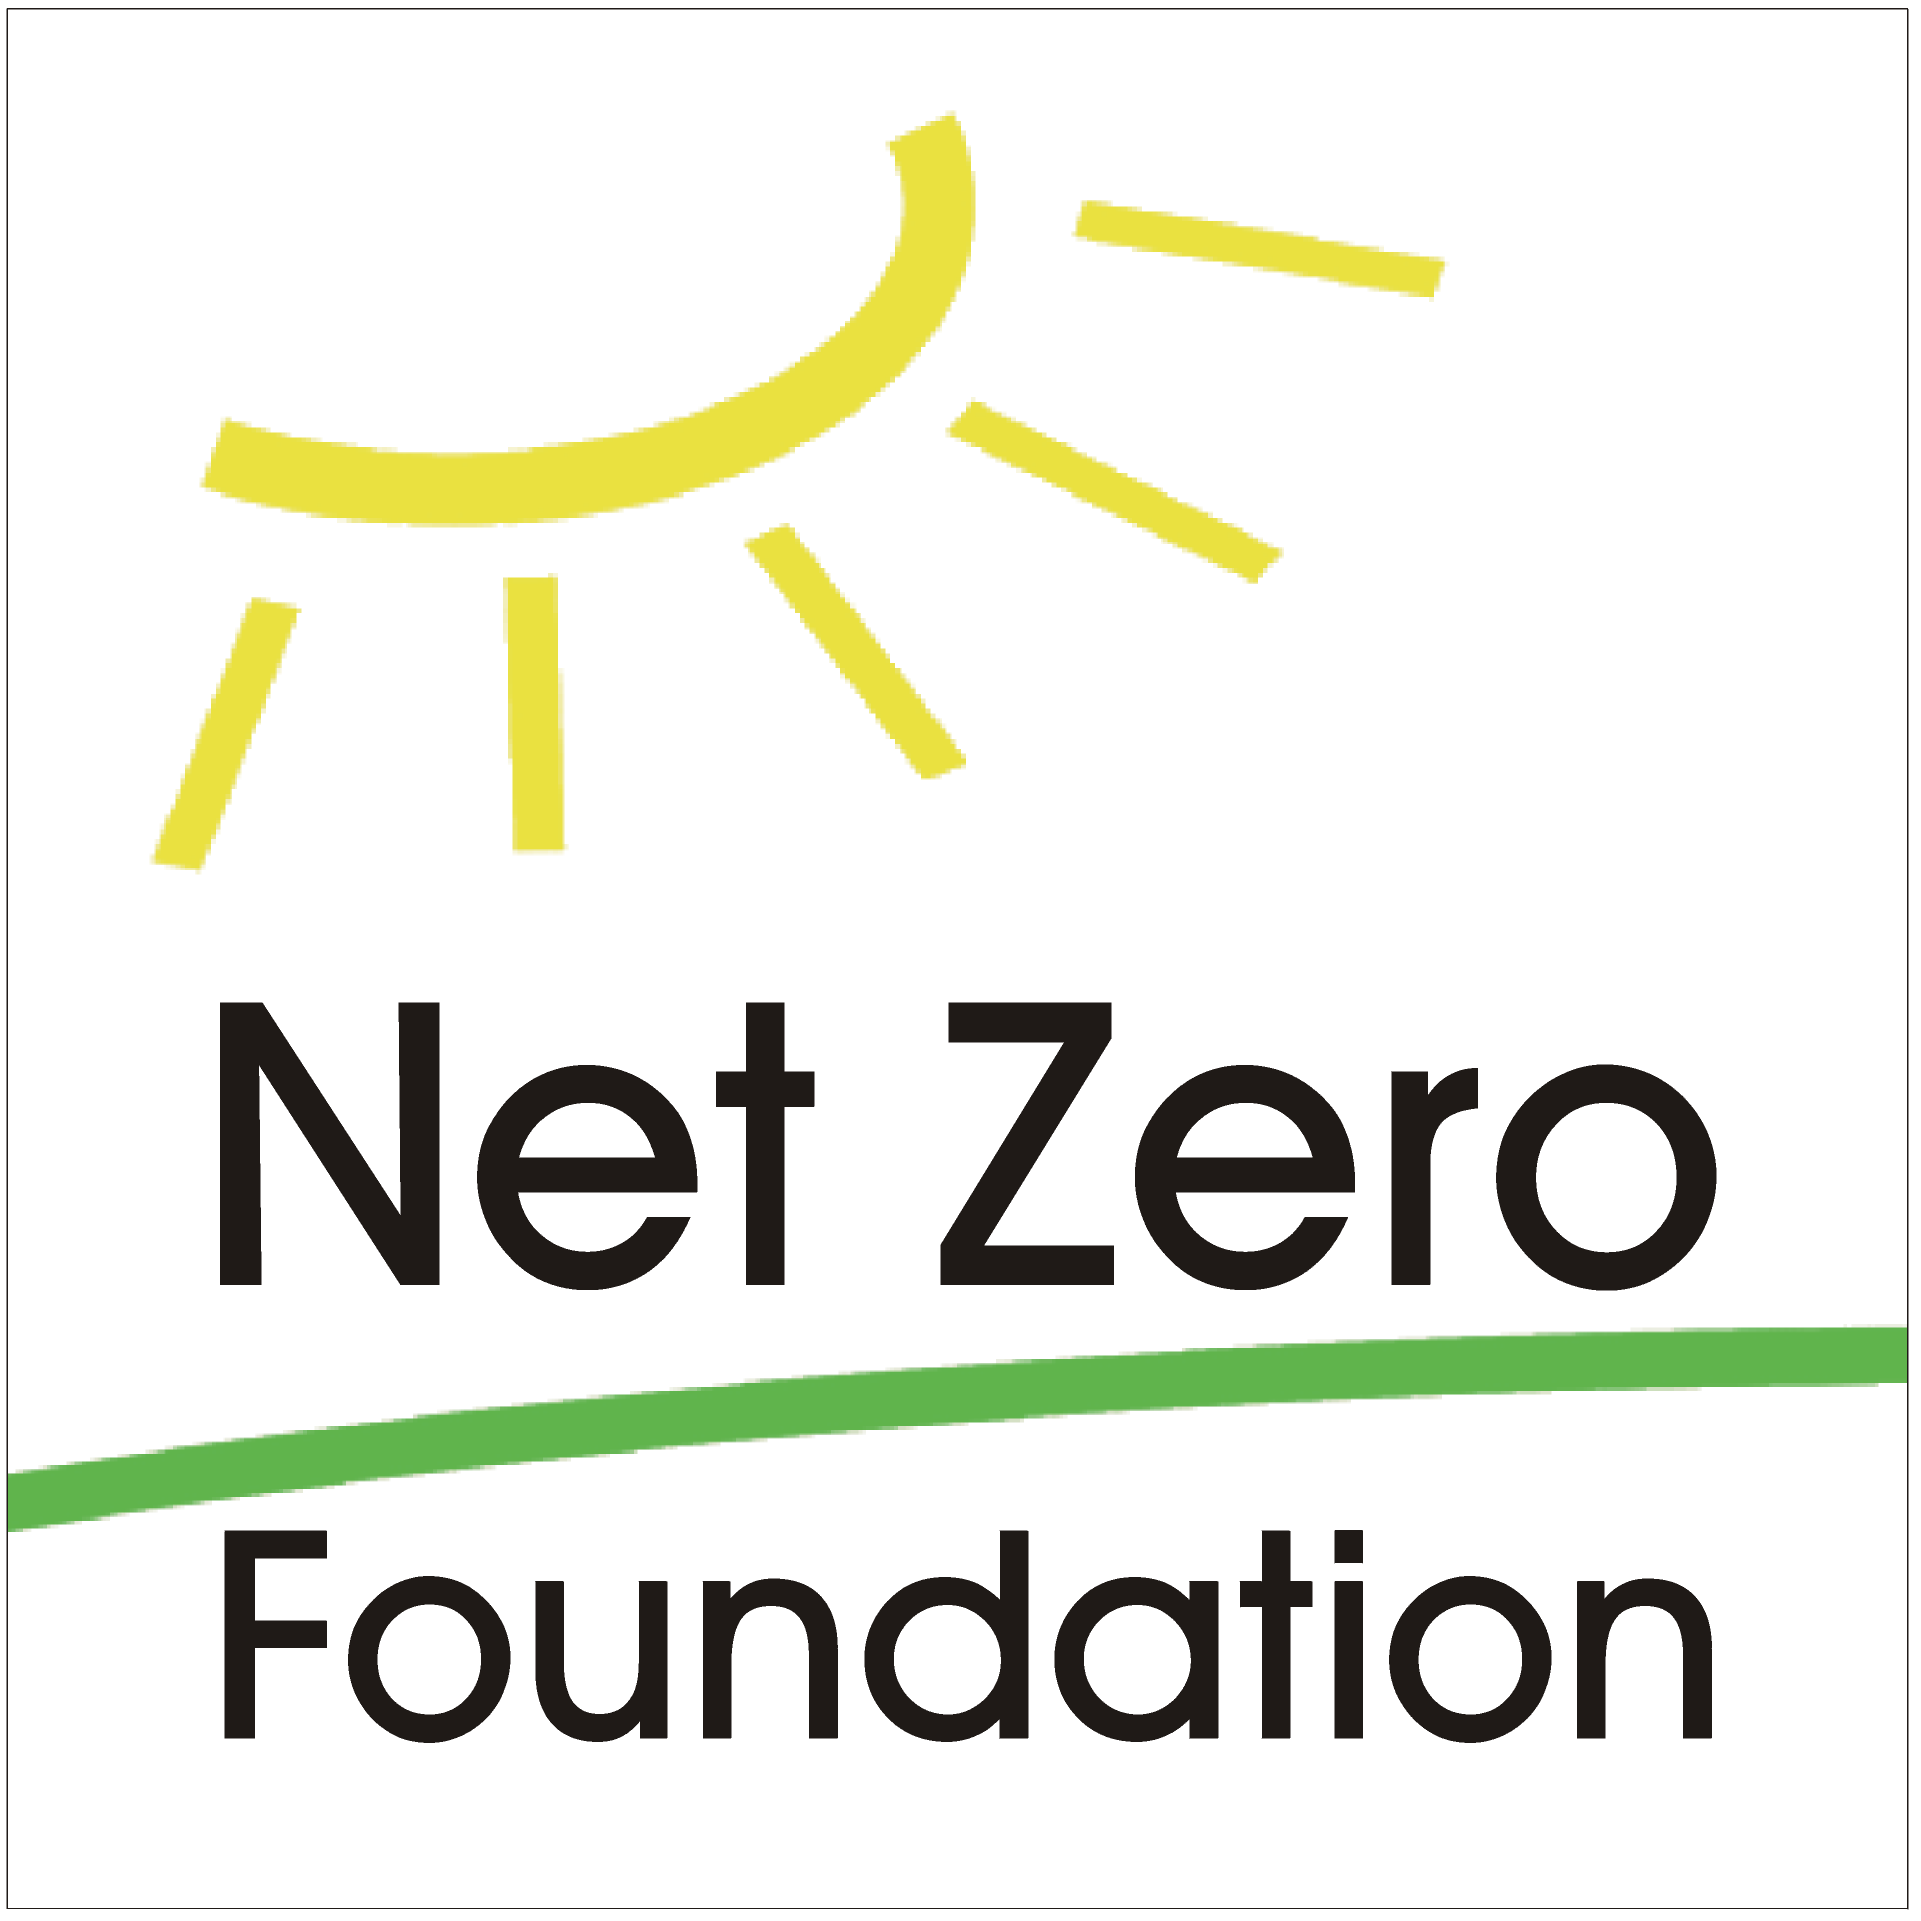 Net Zero Foundation